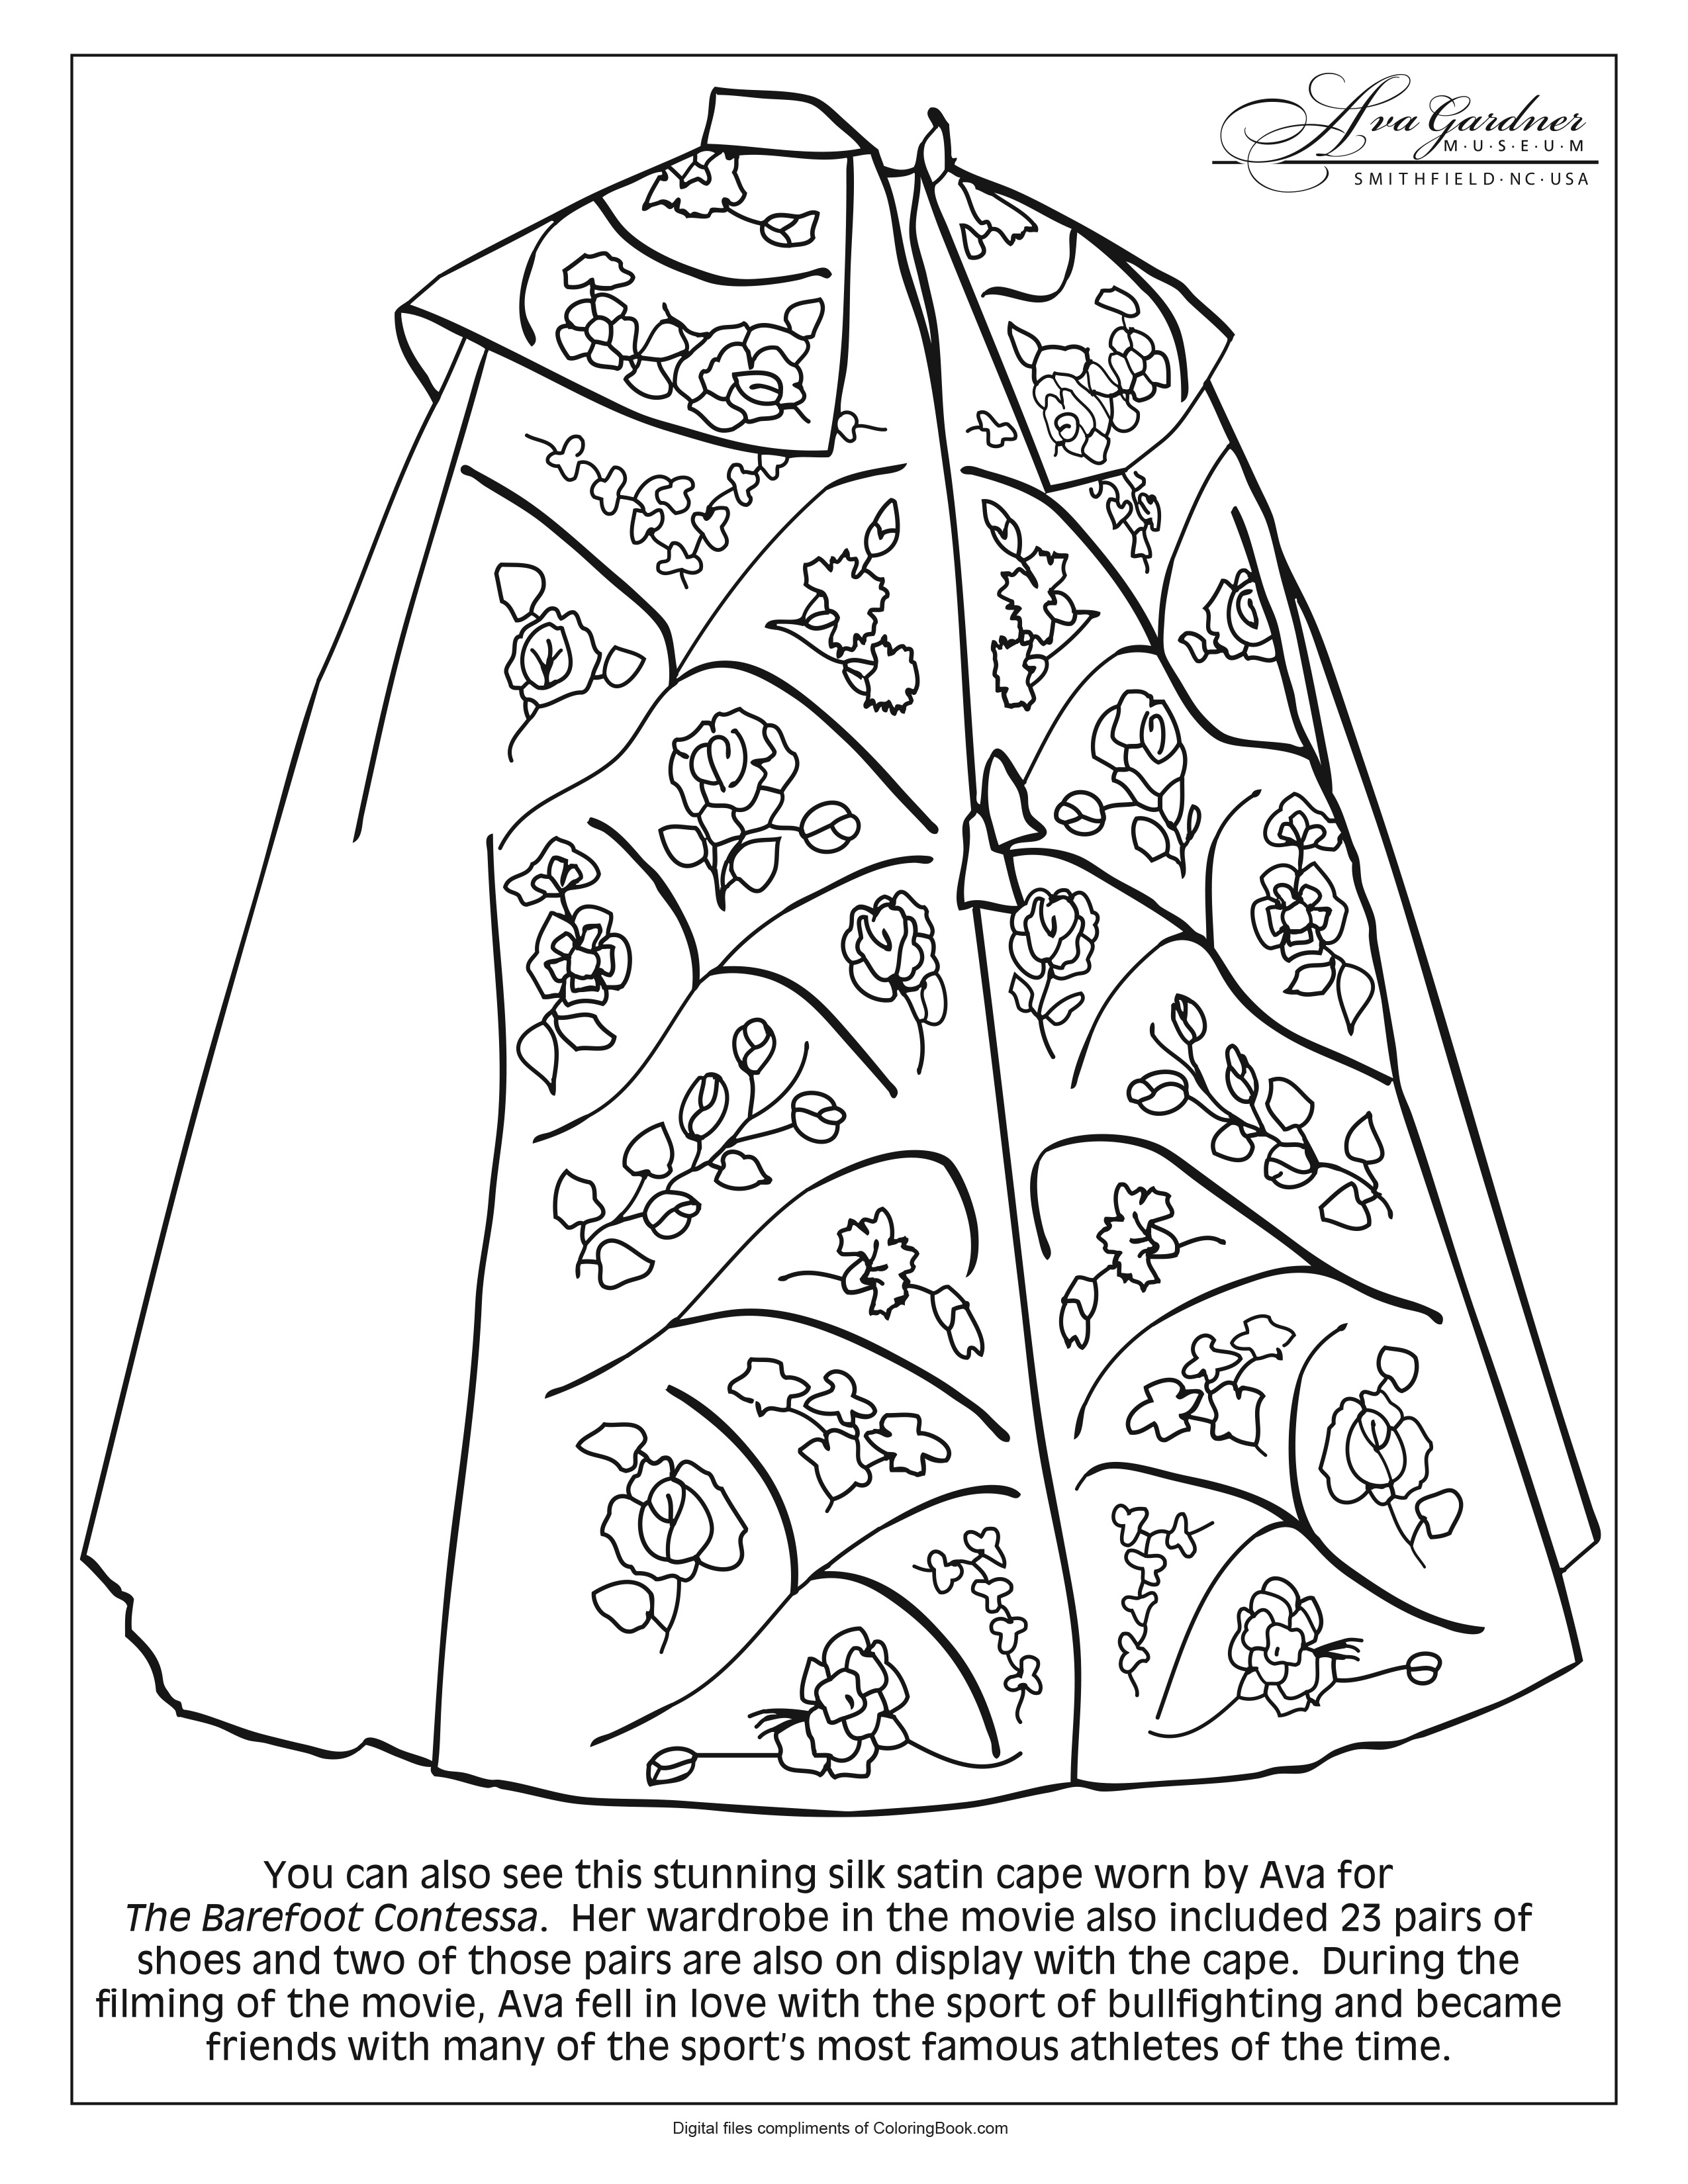 Ava Gardner Coloring Pages_4